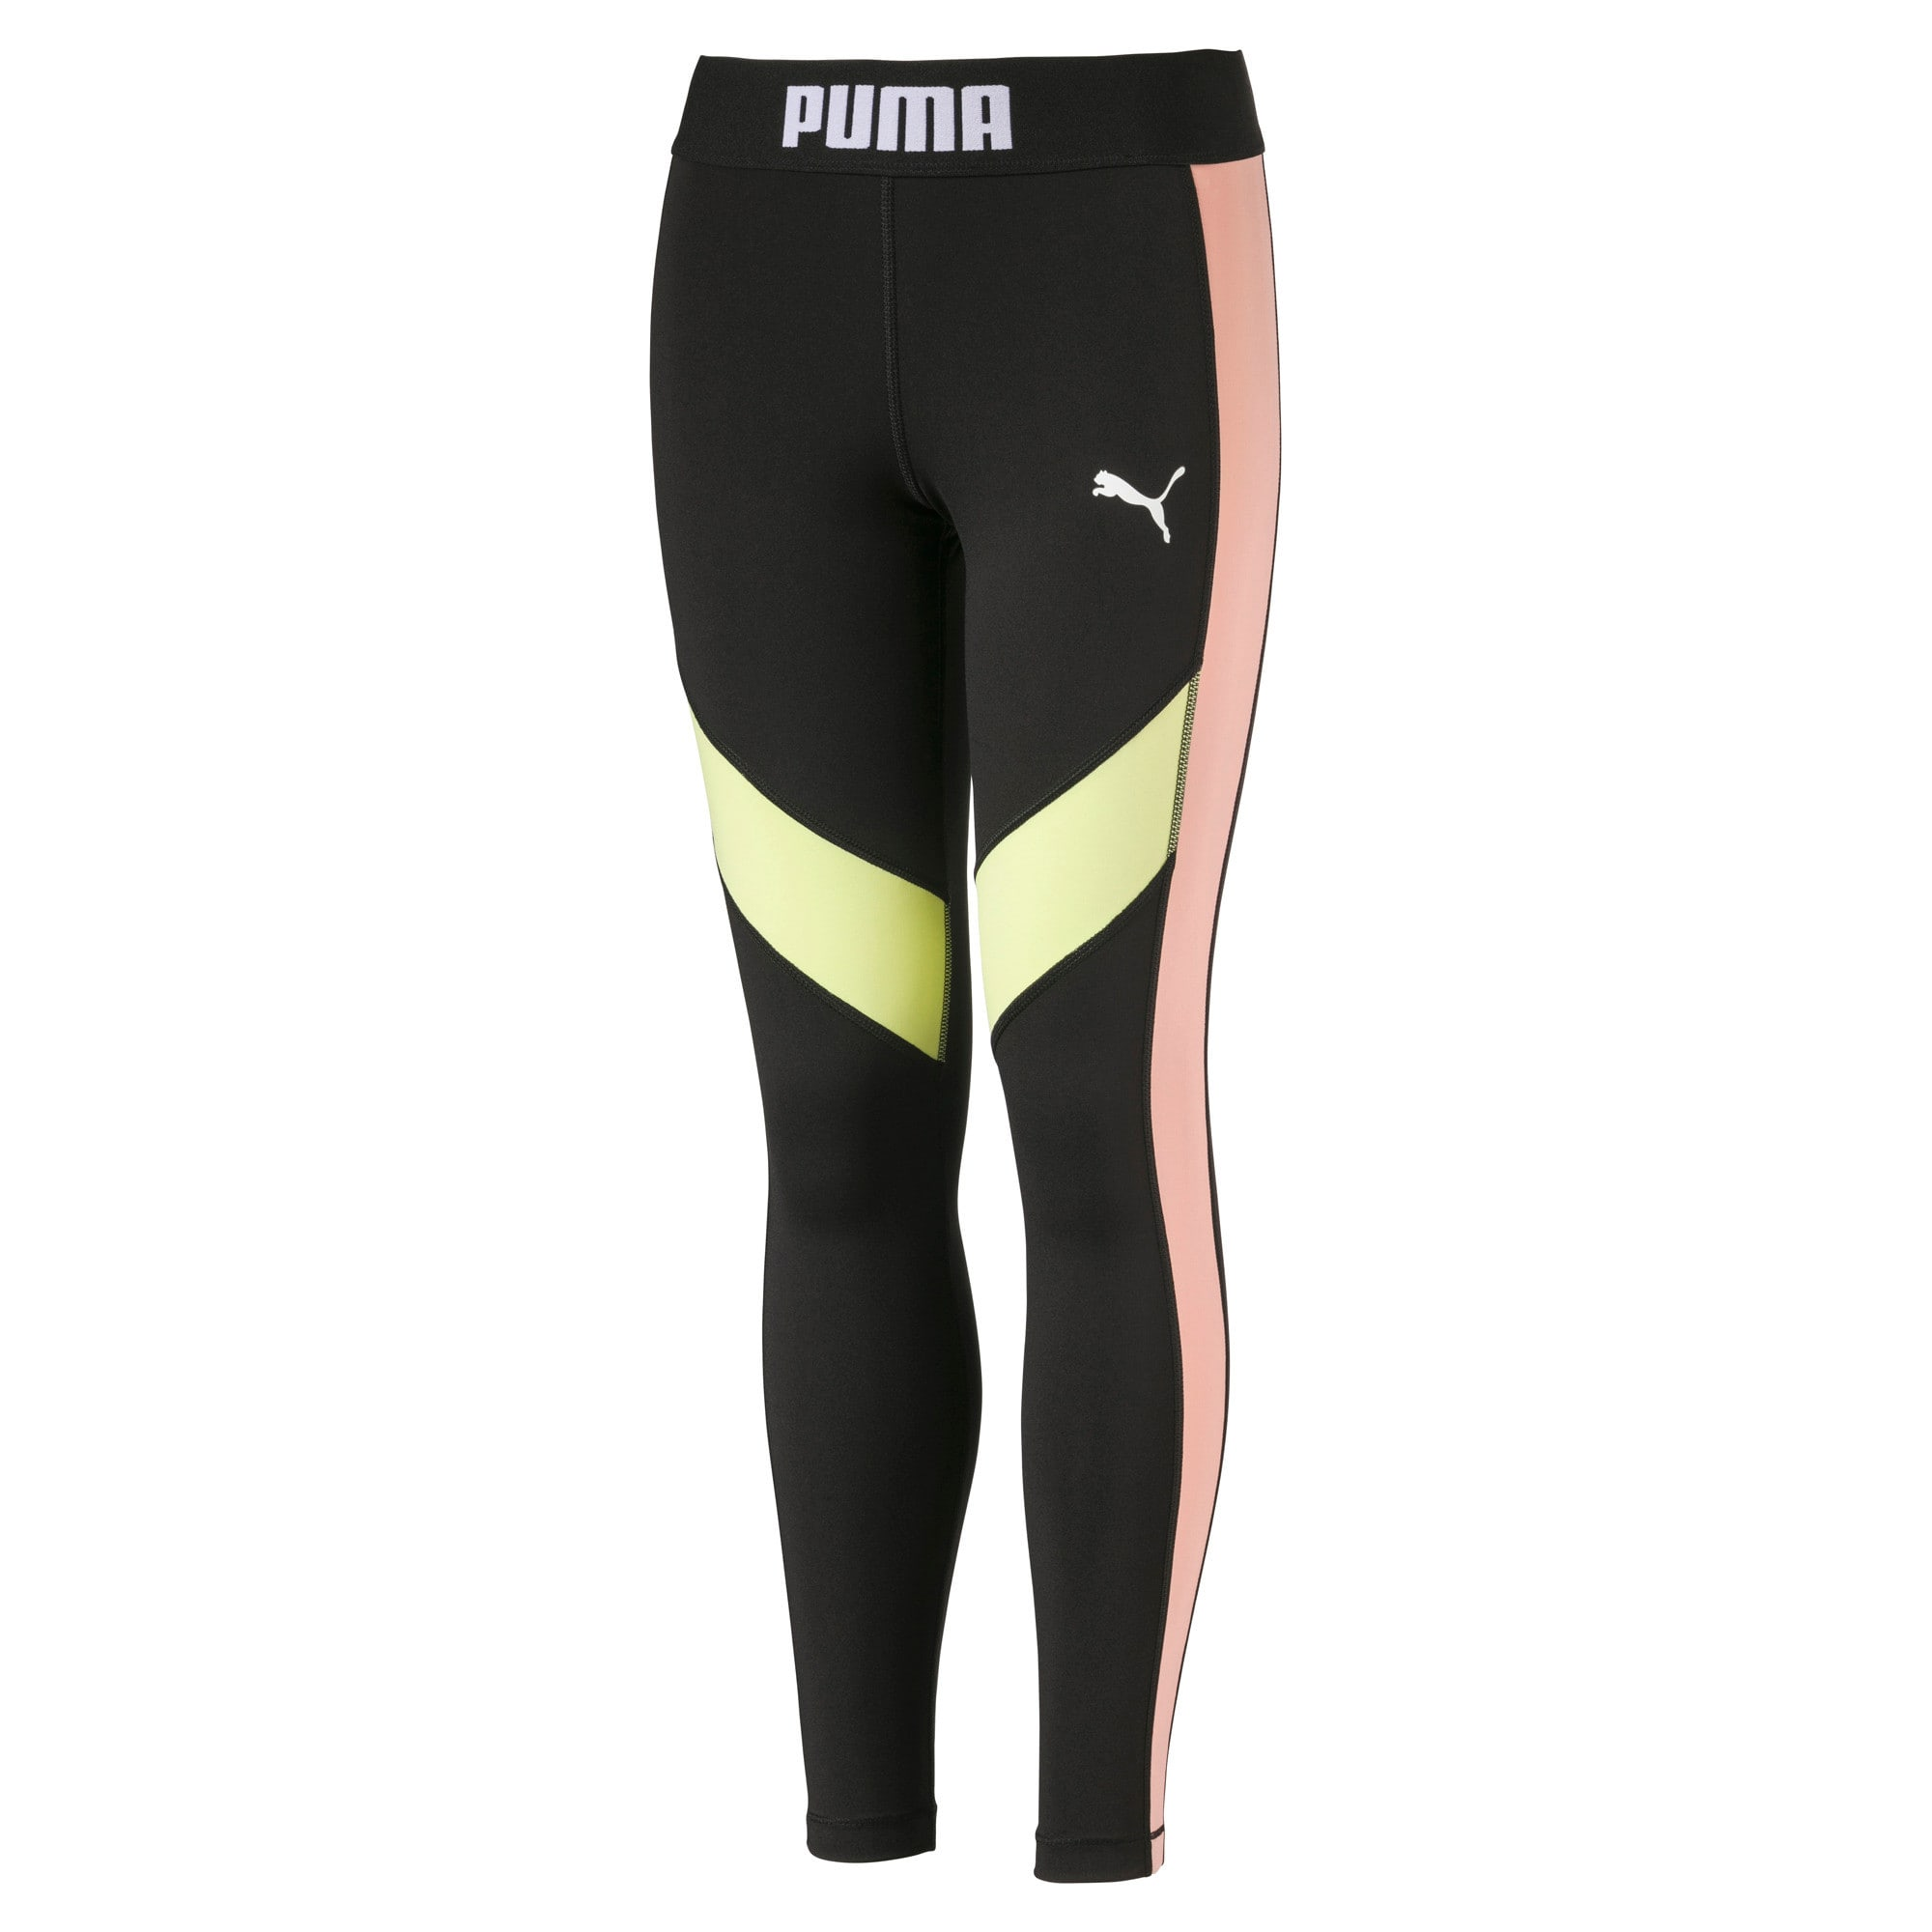 Thumbnail 1 of Girls' Leggings, Puma Black, medium